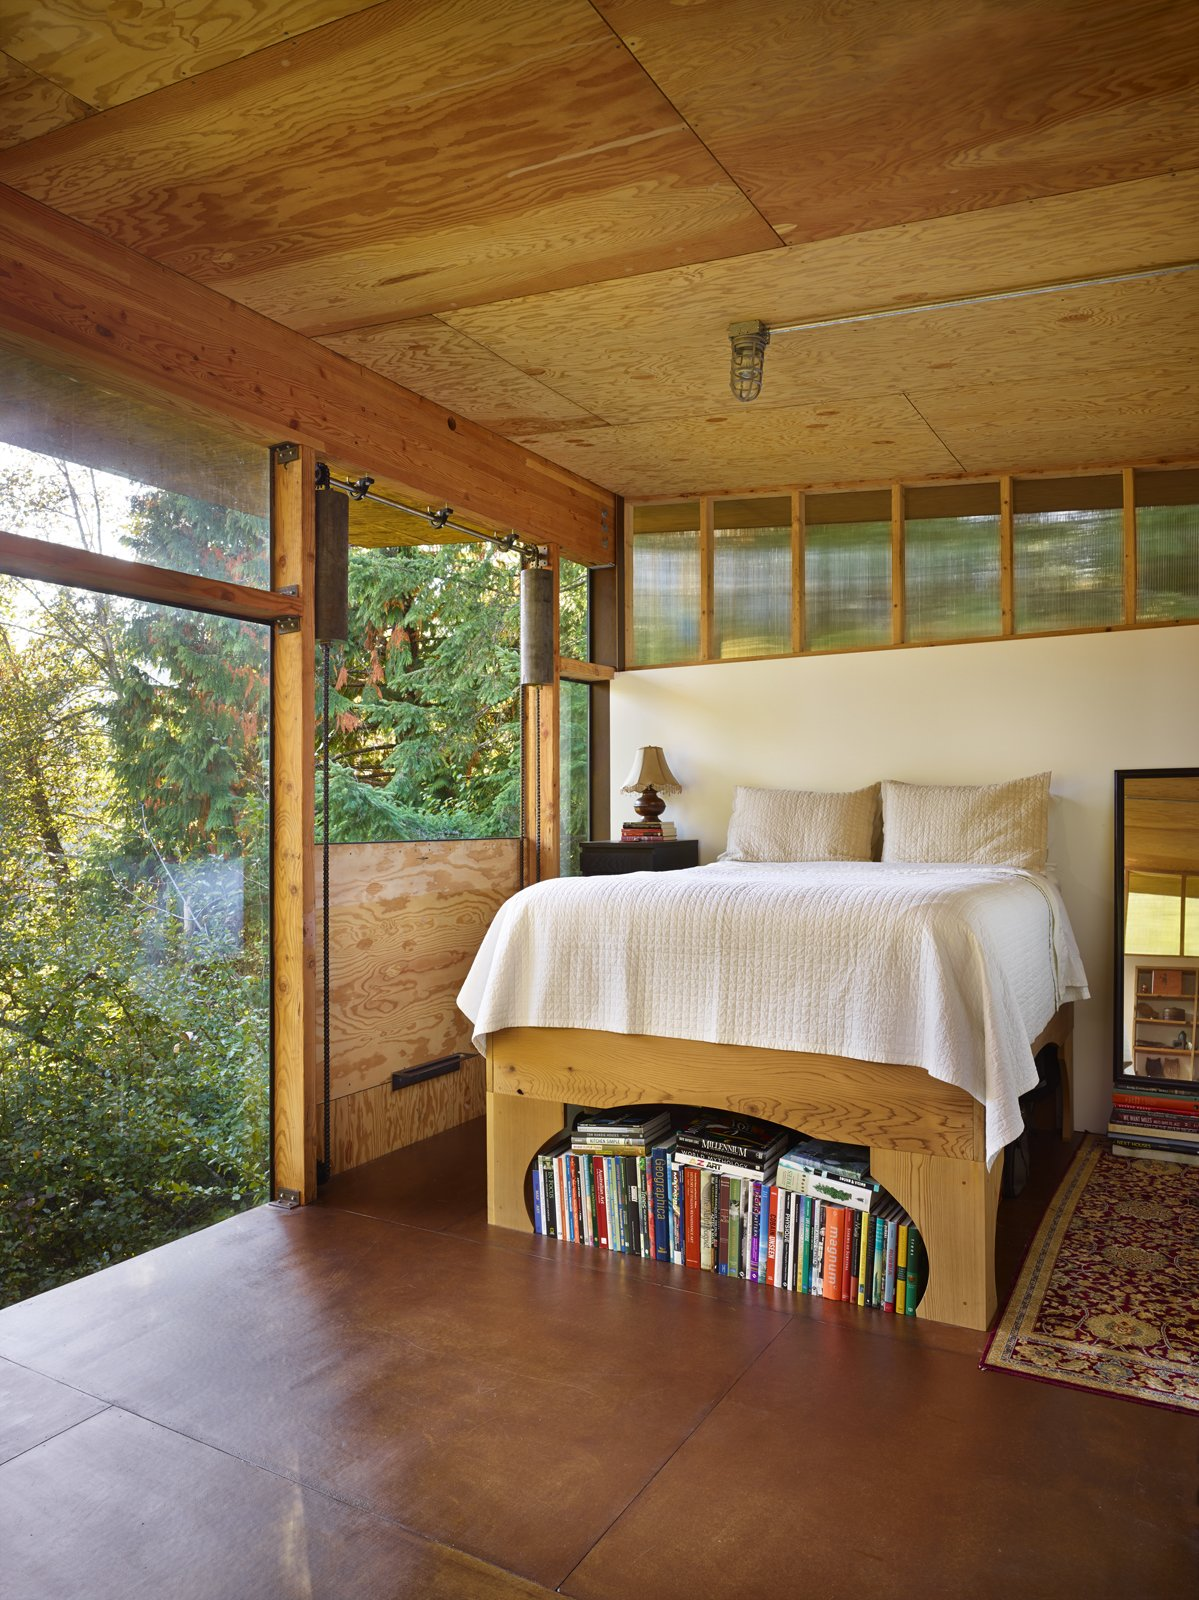 "A door next to the bed drops down, opening the room to its surroundings. ""It's a fantastic way to ventilate the space, but also makes sleeping in the loft feel like camping when it's down,"" Eerkes says.  Bedrooms by Dwell from An Eco-Friendly Compact Cabin in Washington"